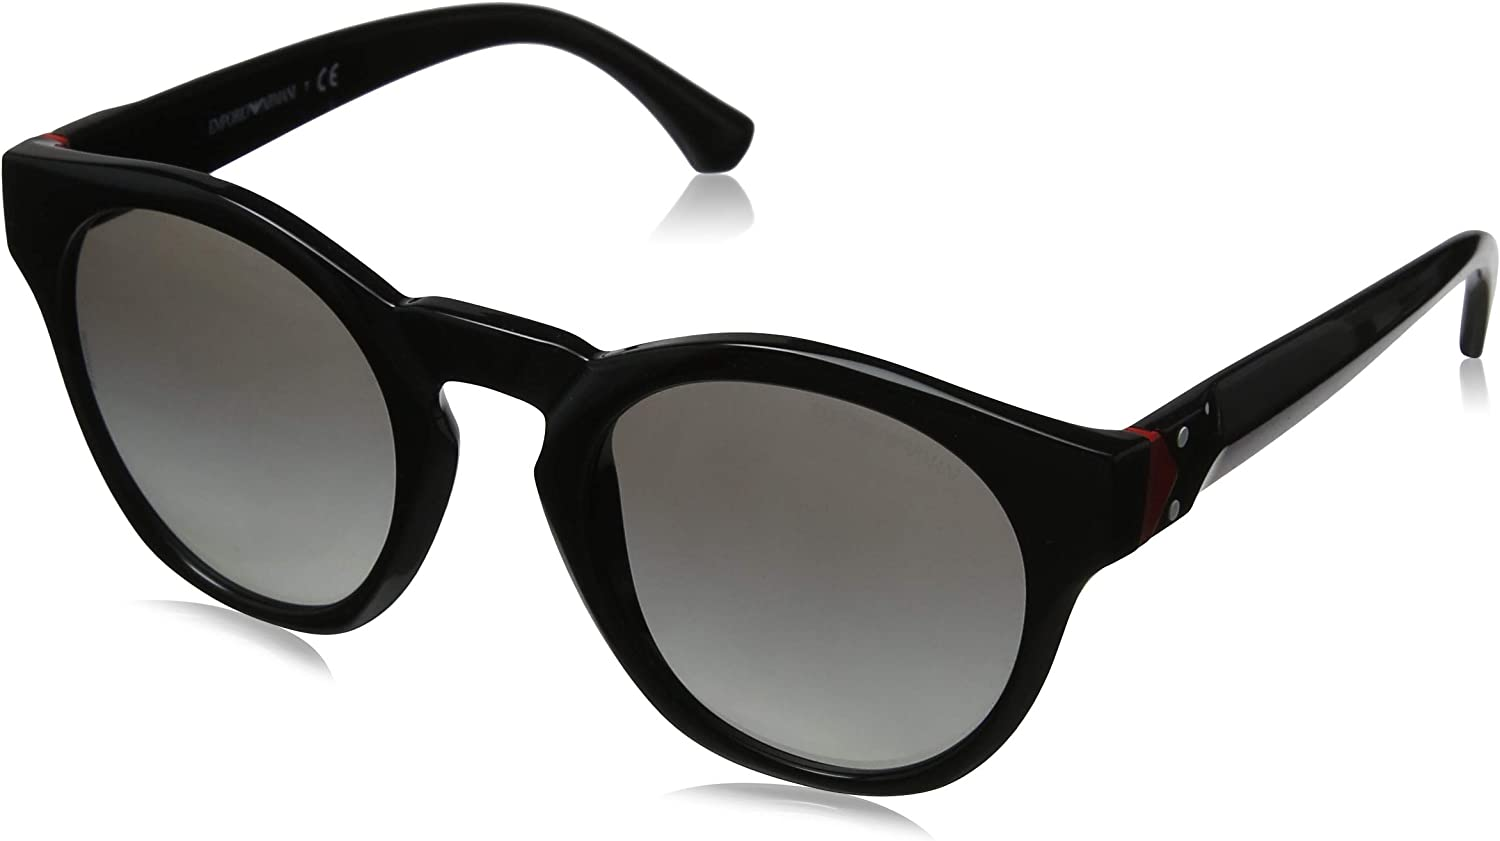 Emporio Armani EA4113 501711 Black Round Sunglasses for